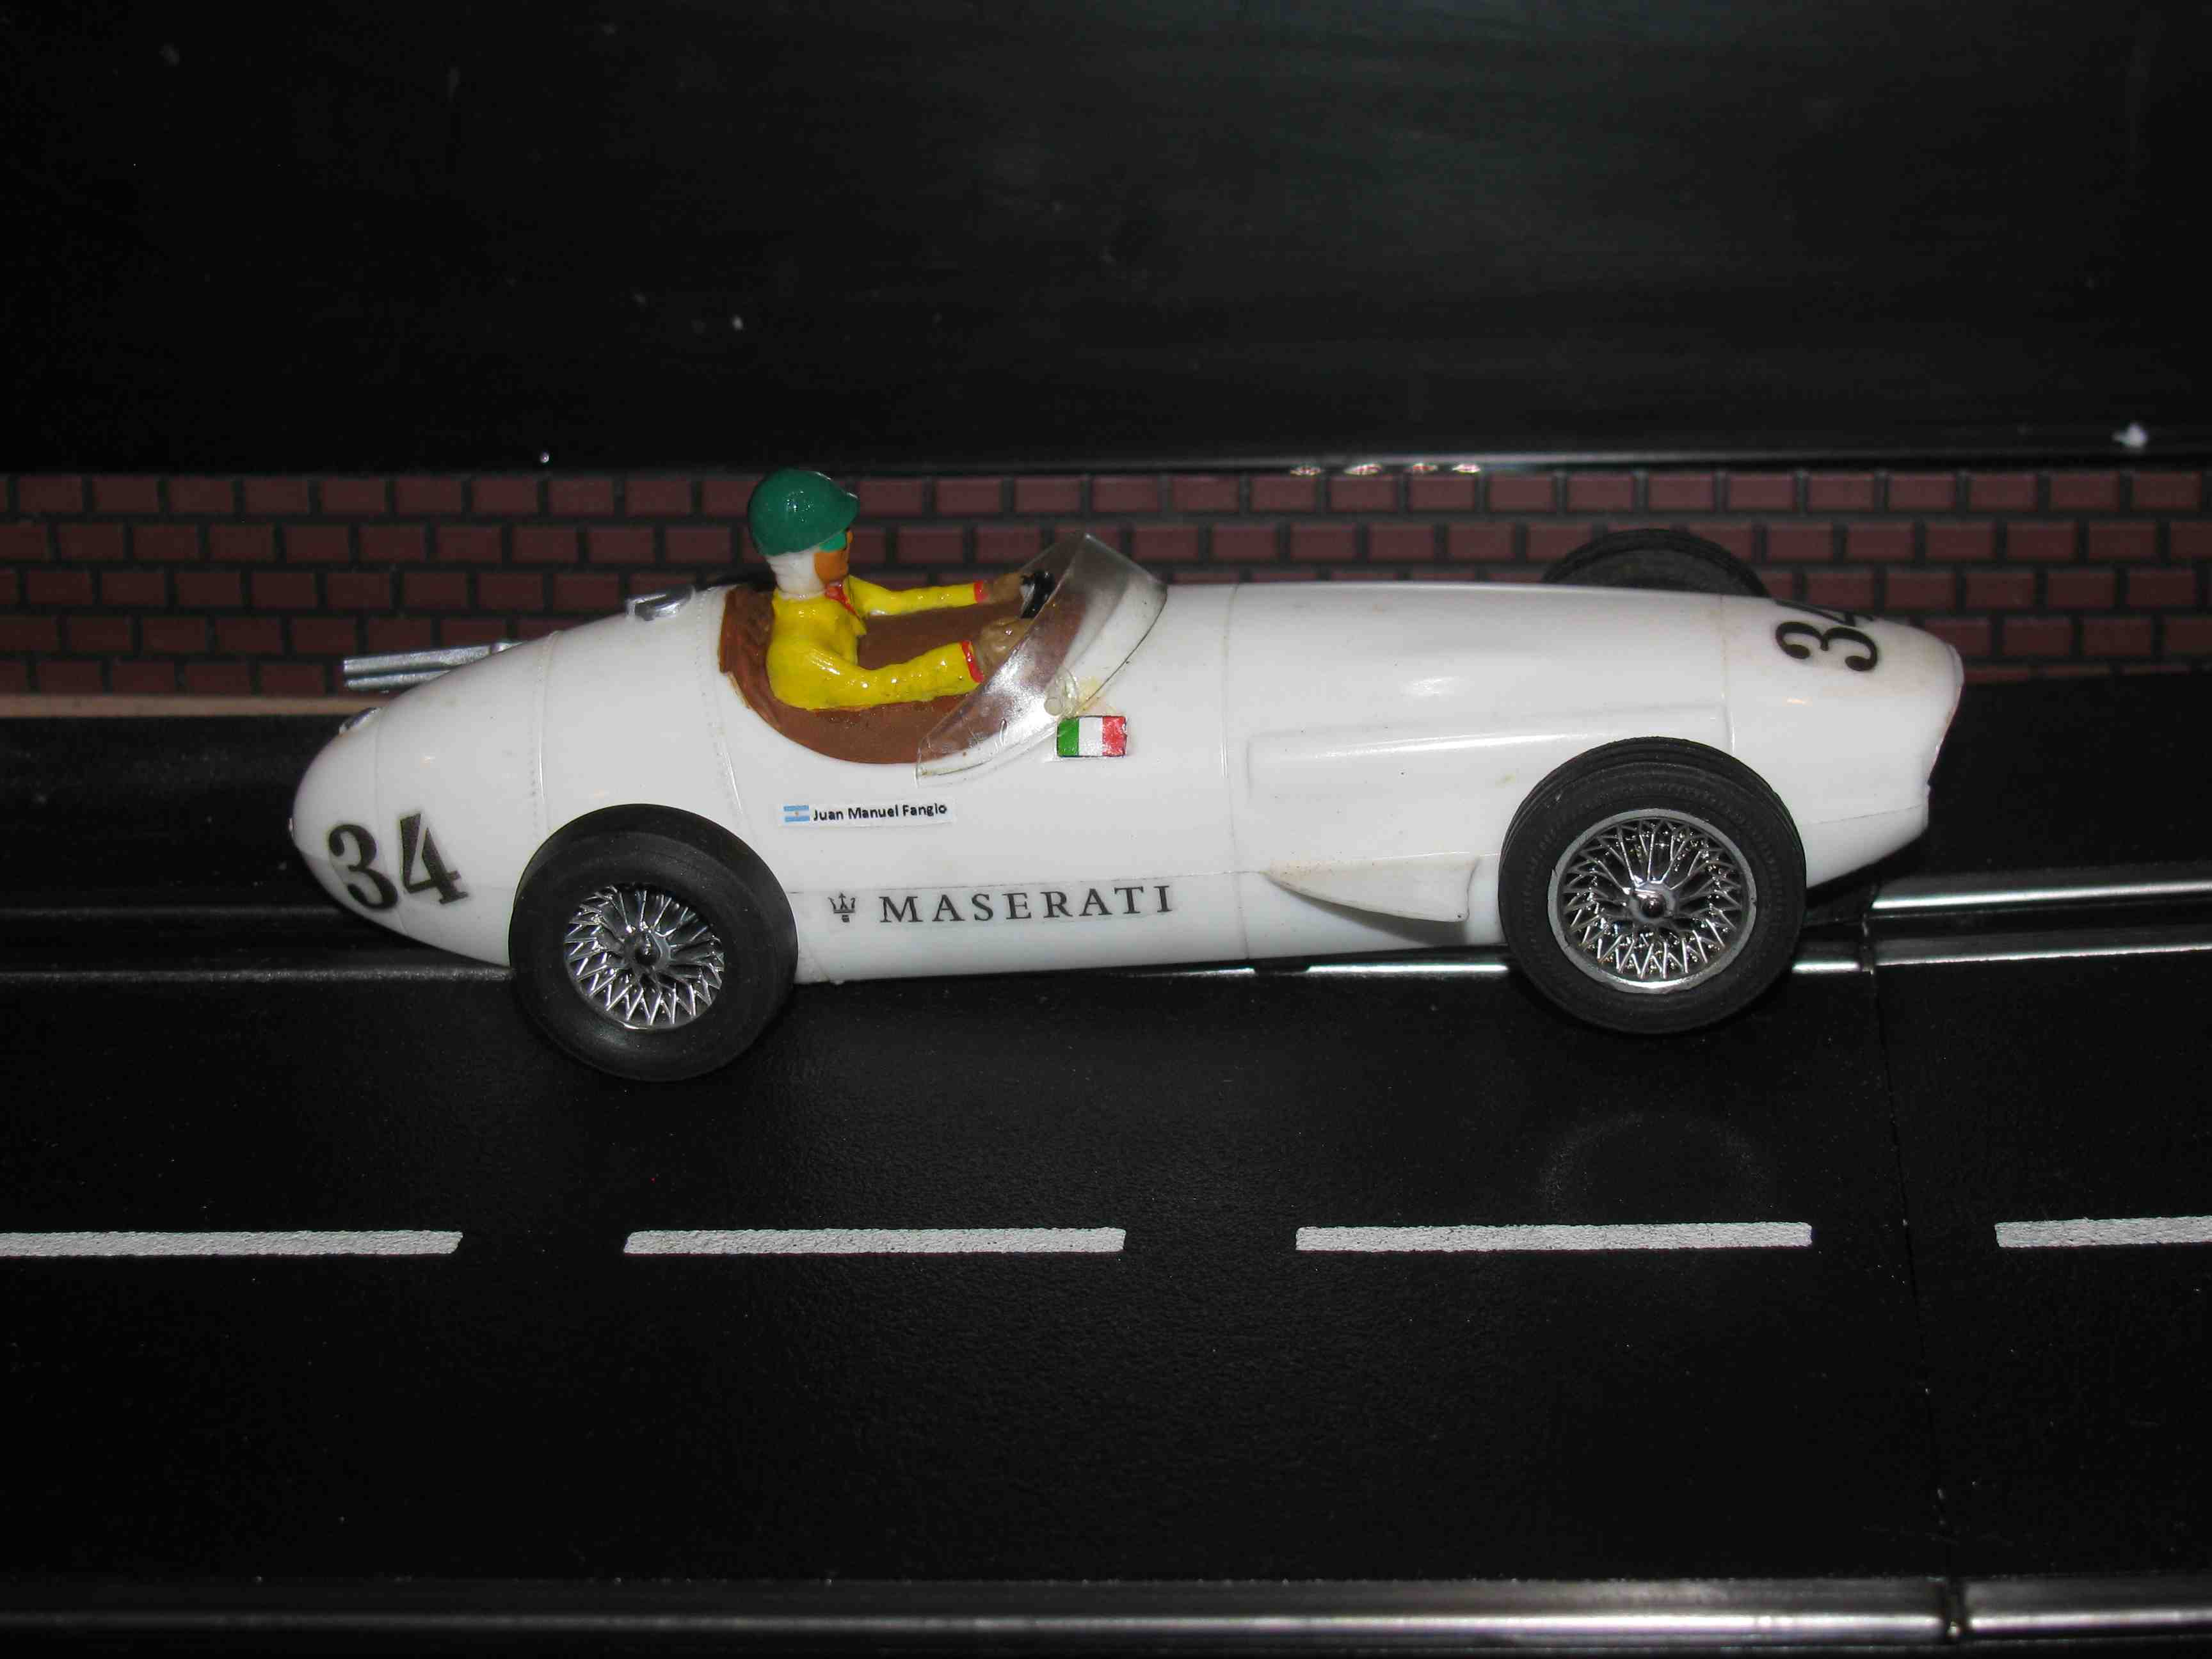 * SOLD * Vintage Maserati 250 Slot Car 1/32 Scale – White Car #34